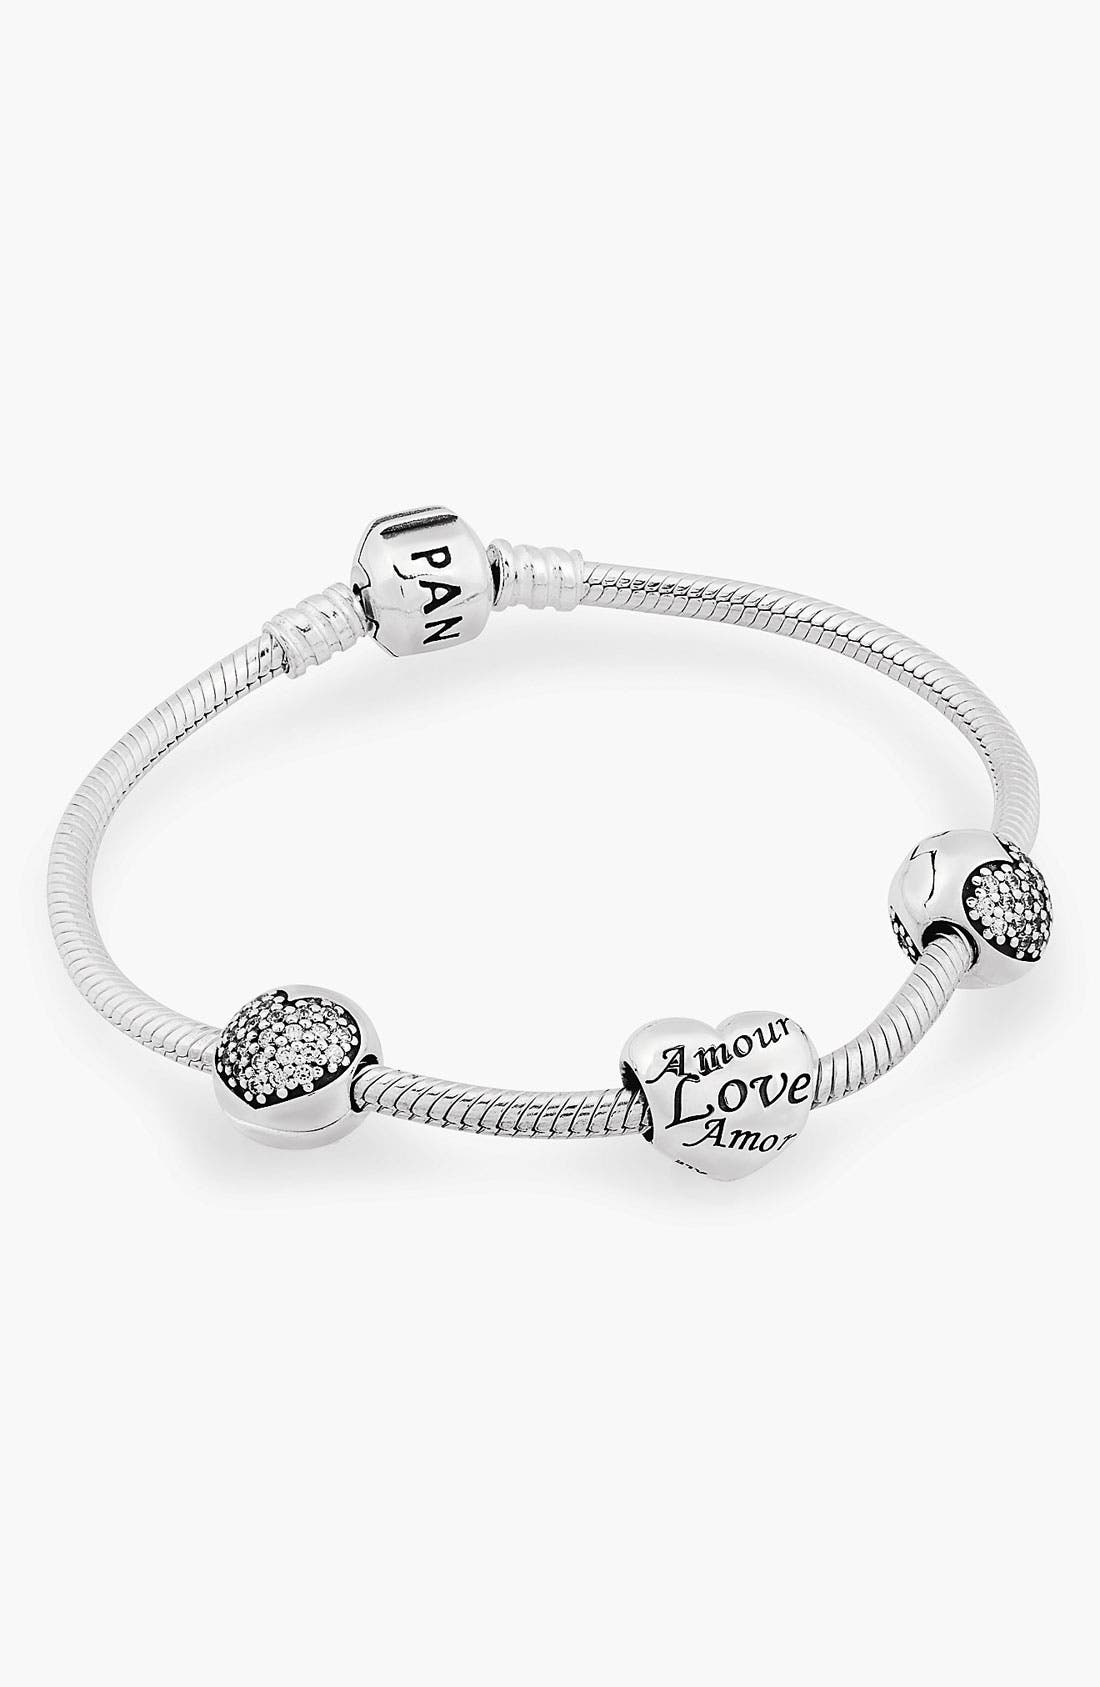 Main Image - LOVE OF MY LIFE BRACELET GIFT SET